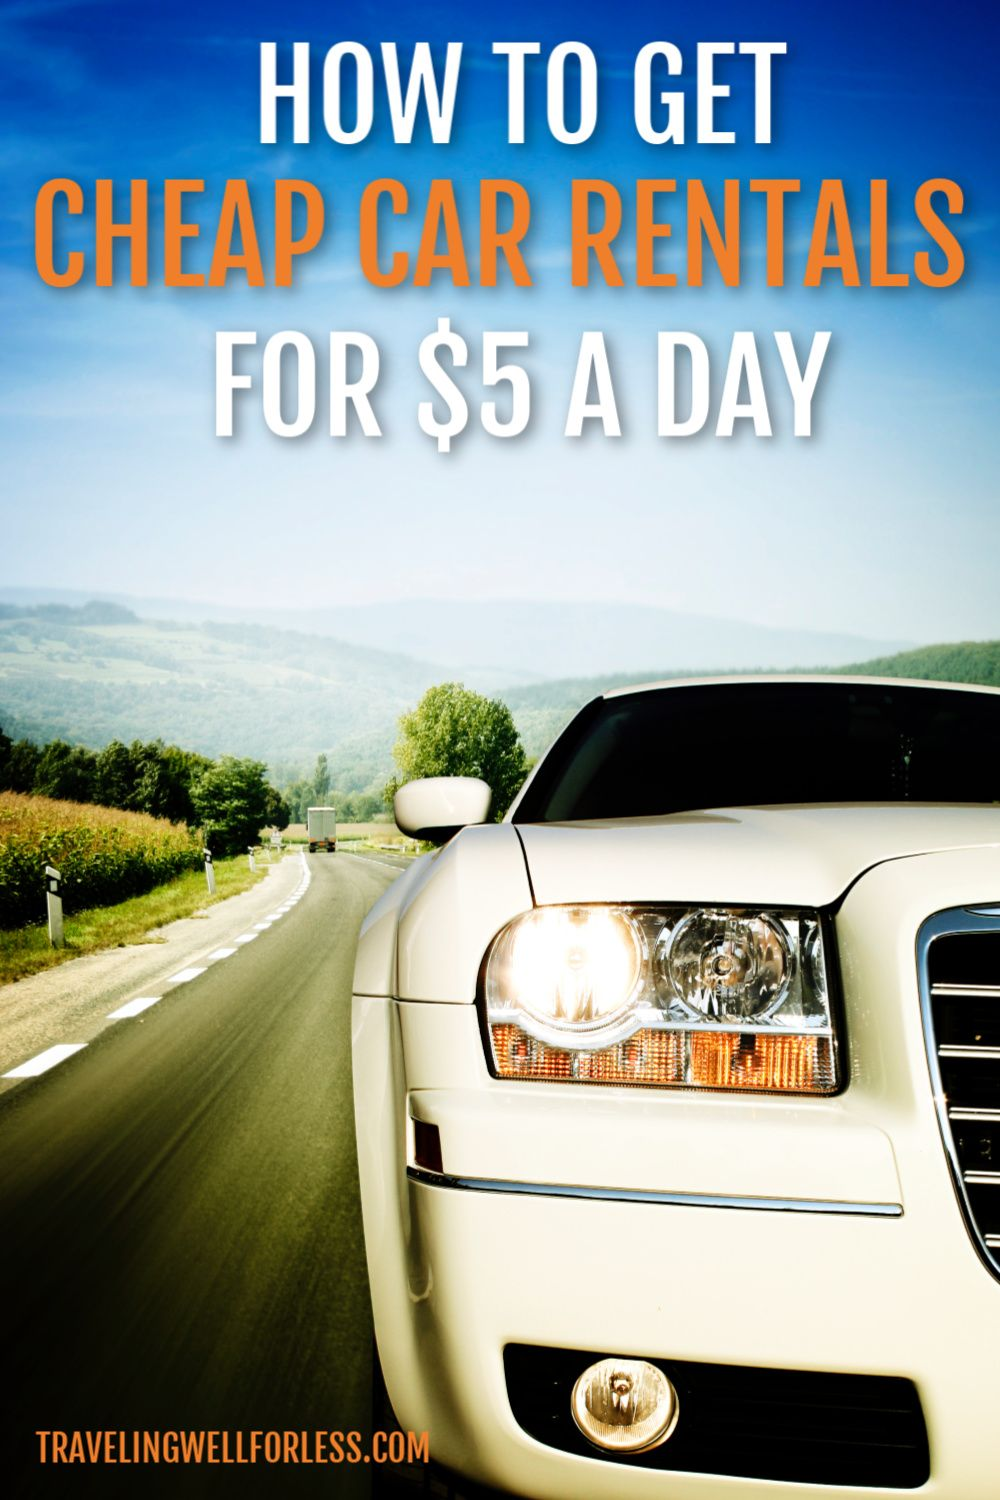 How to Get Cheap Car Rentals for $5 a day